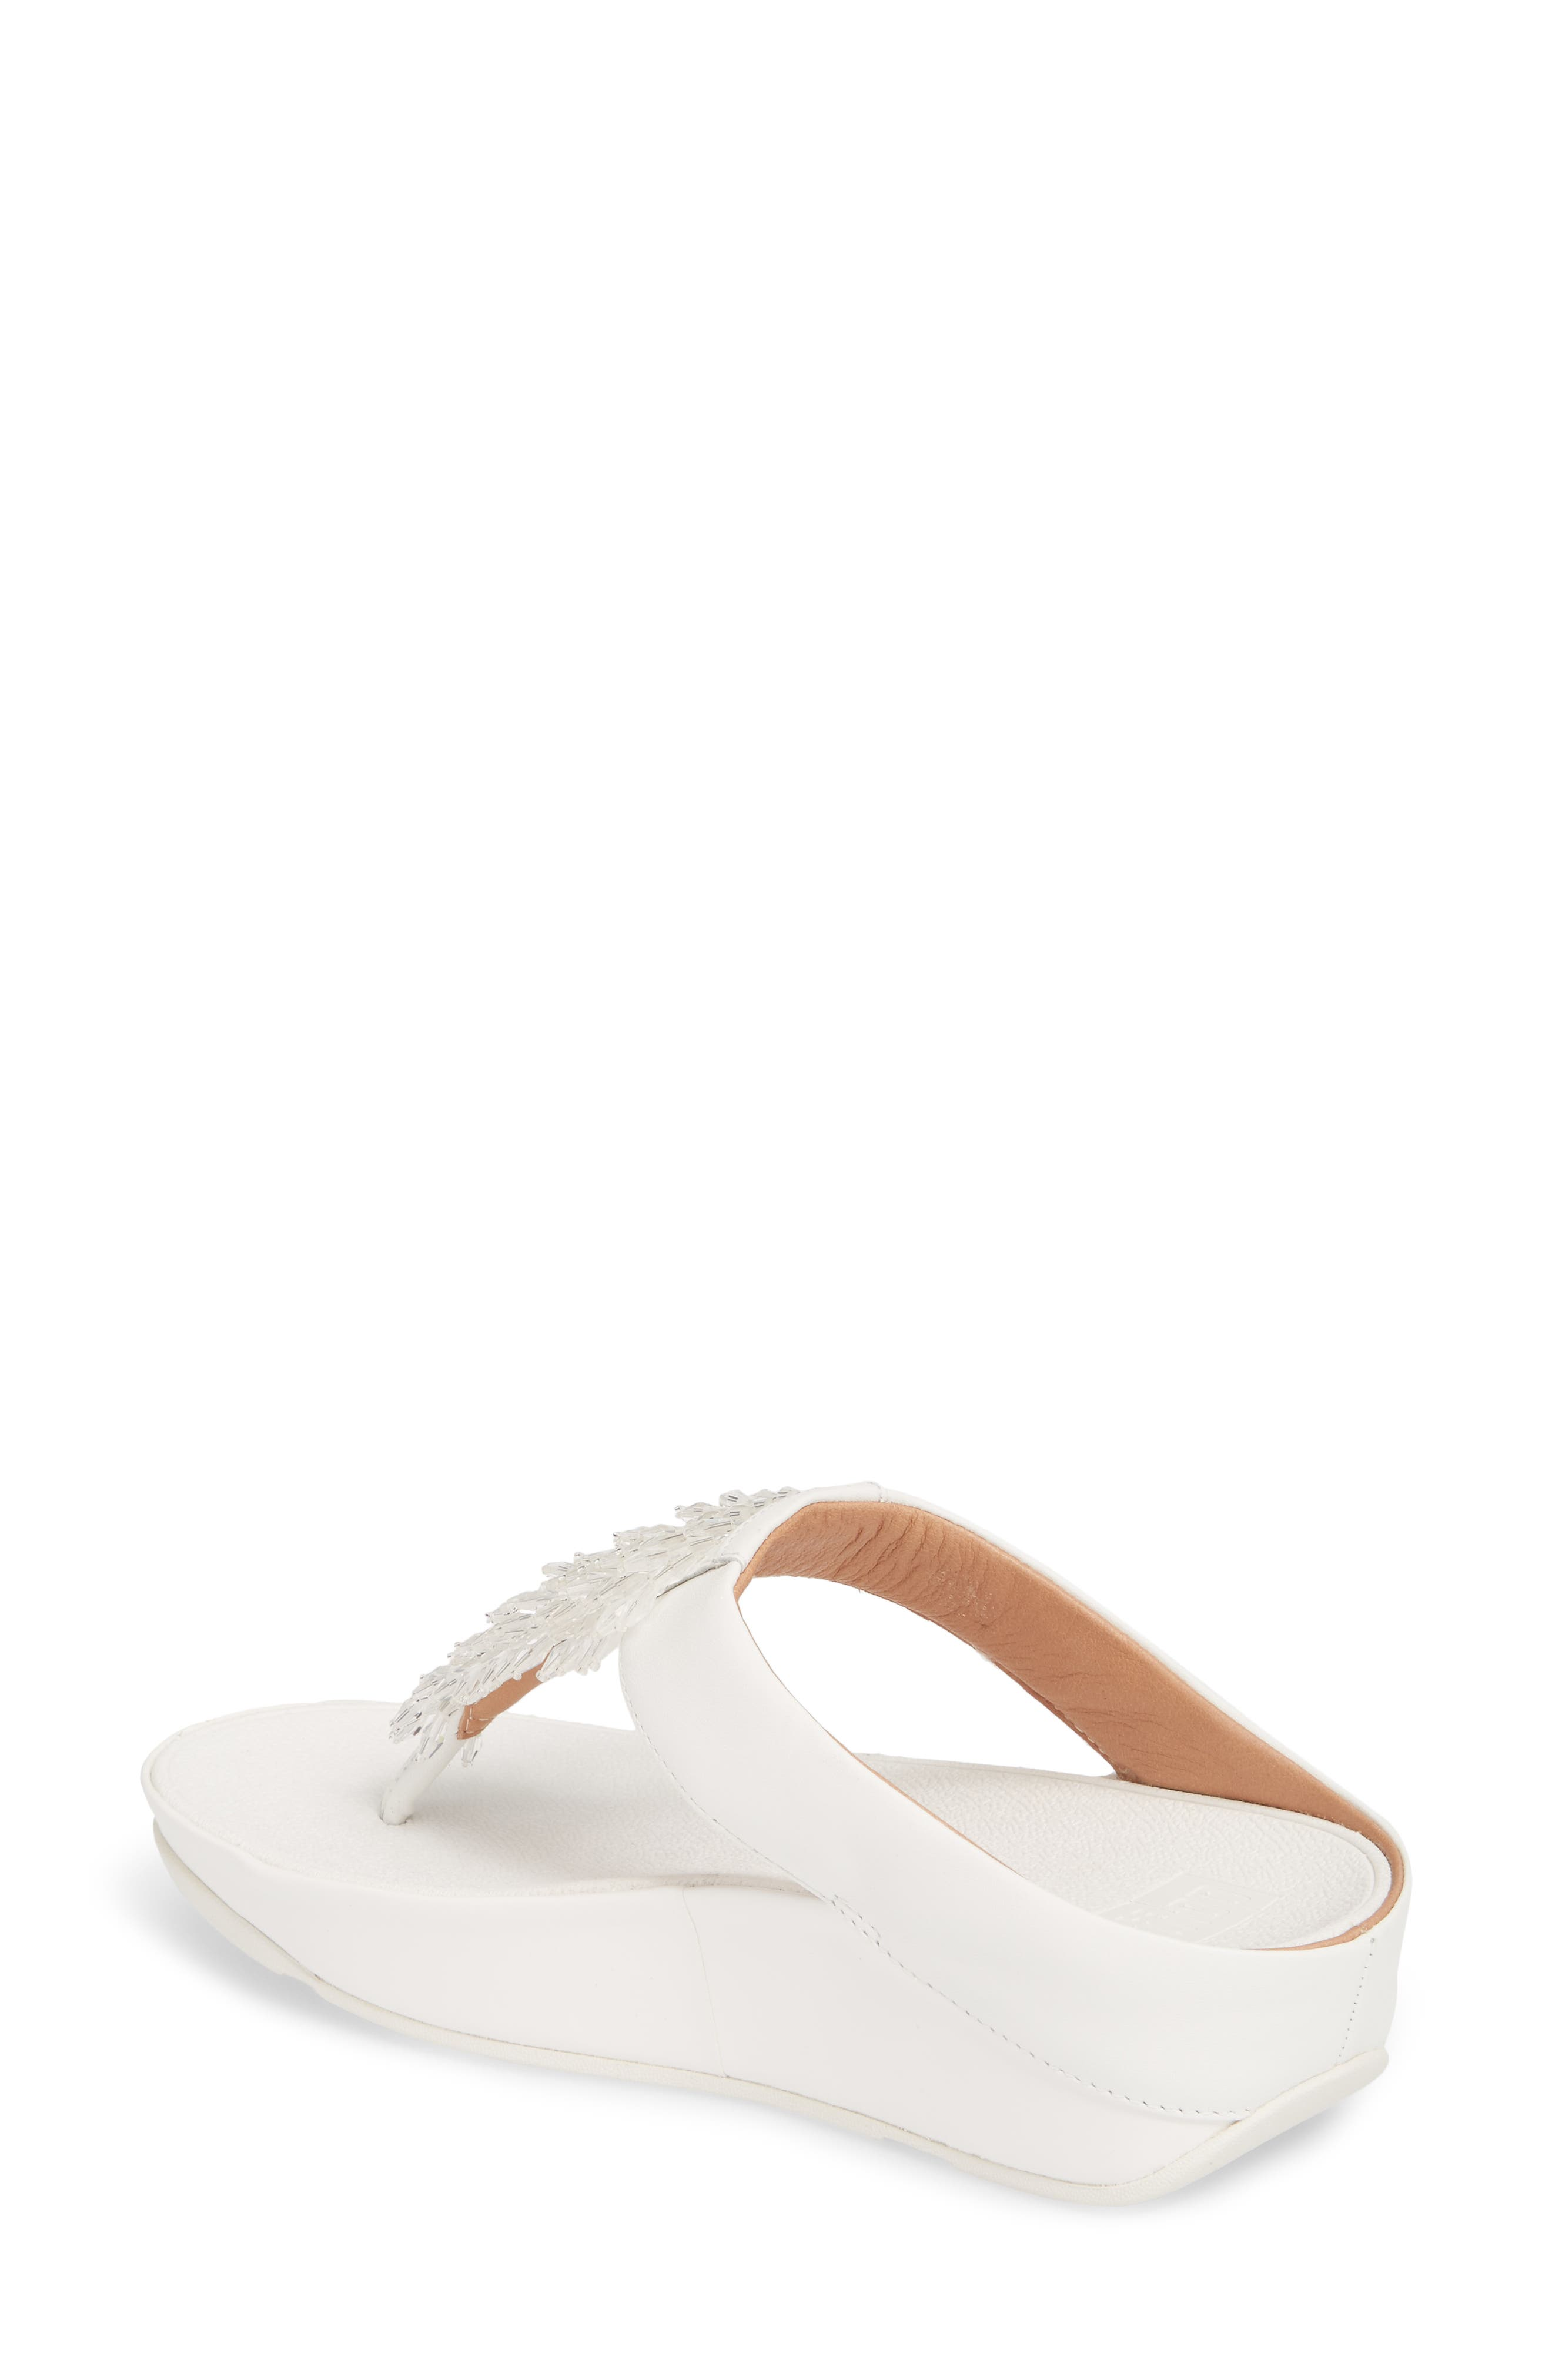 FITFLOP,                             Rumba Sandal,                             Alternate thumbnail 2, color,                             URBAN WHITE LEATHER